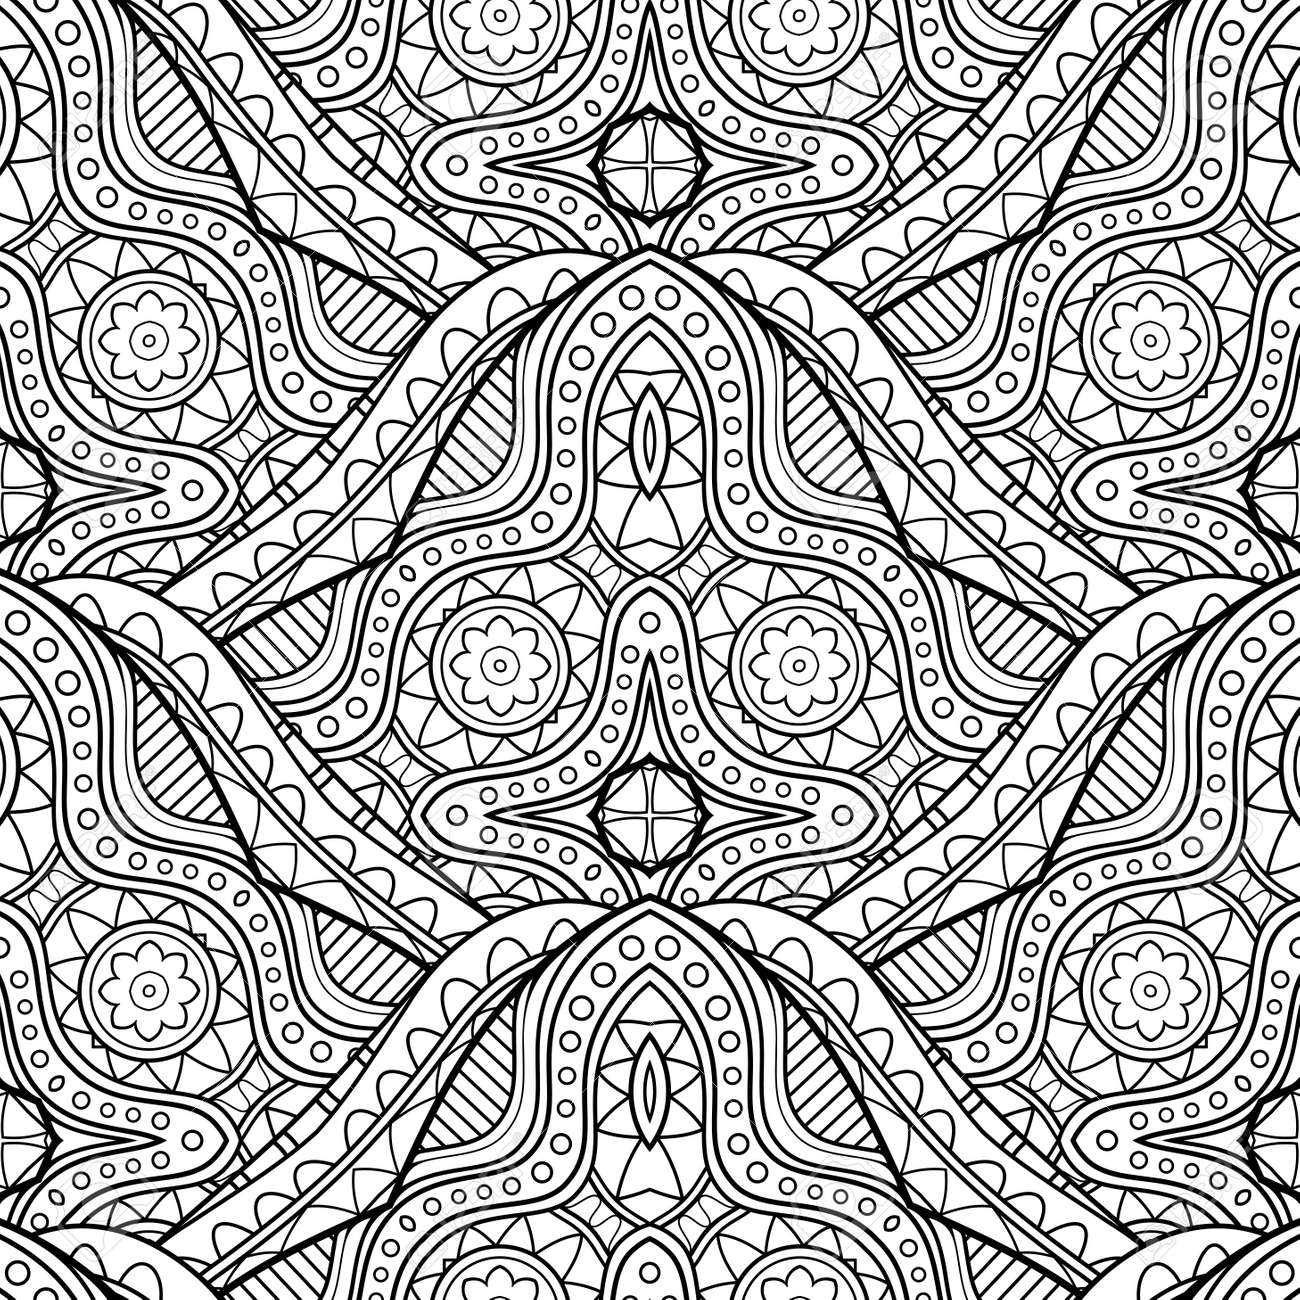 Printable Coloring Page | Vector Seamless Monochrome Pattern Printable Coloring Pages Hand